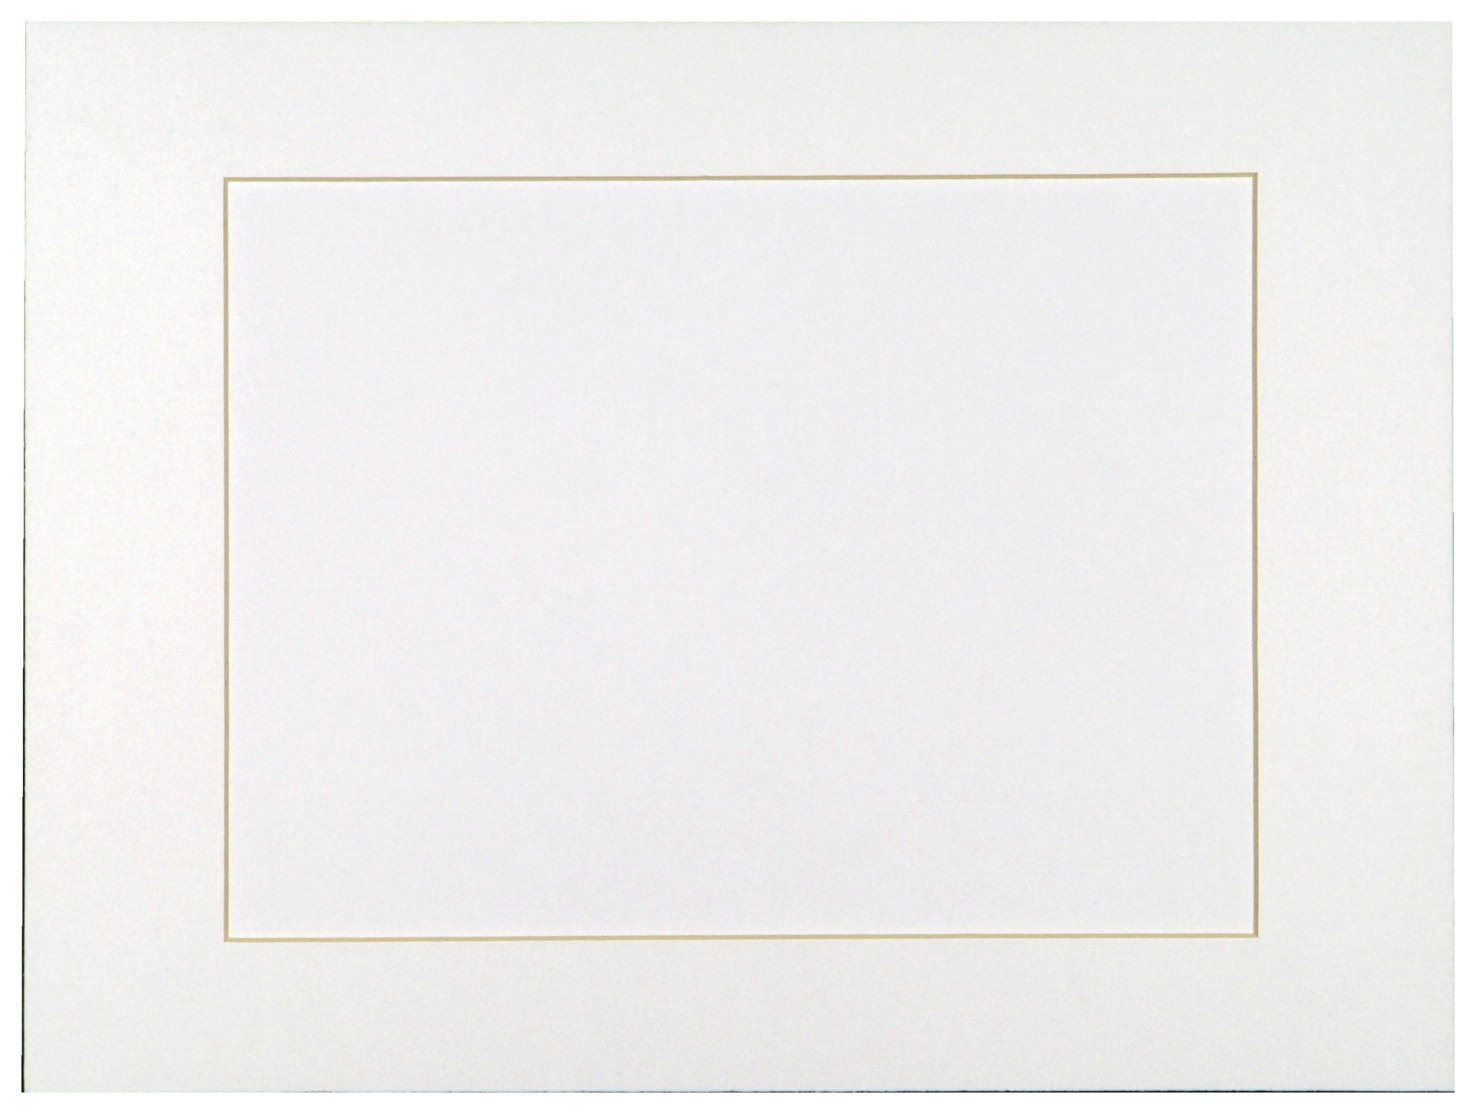 Sax Acid-Free Premium Smooth Surfaced Pre-Cut Mat, Bright White, Pack - 10   B0044SETDS